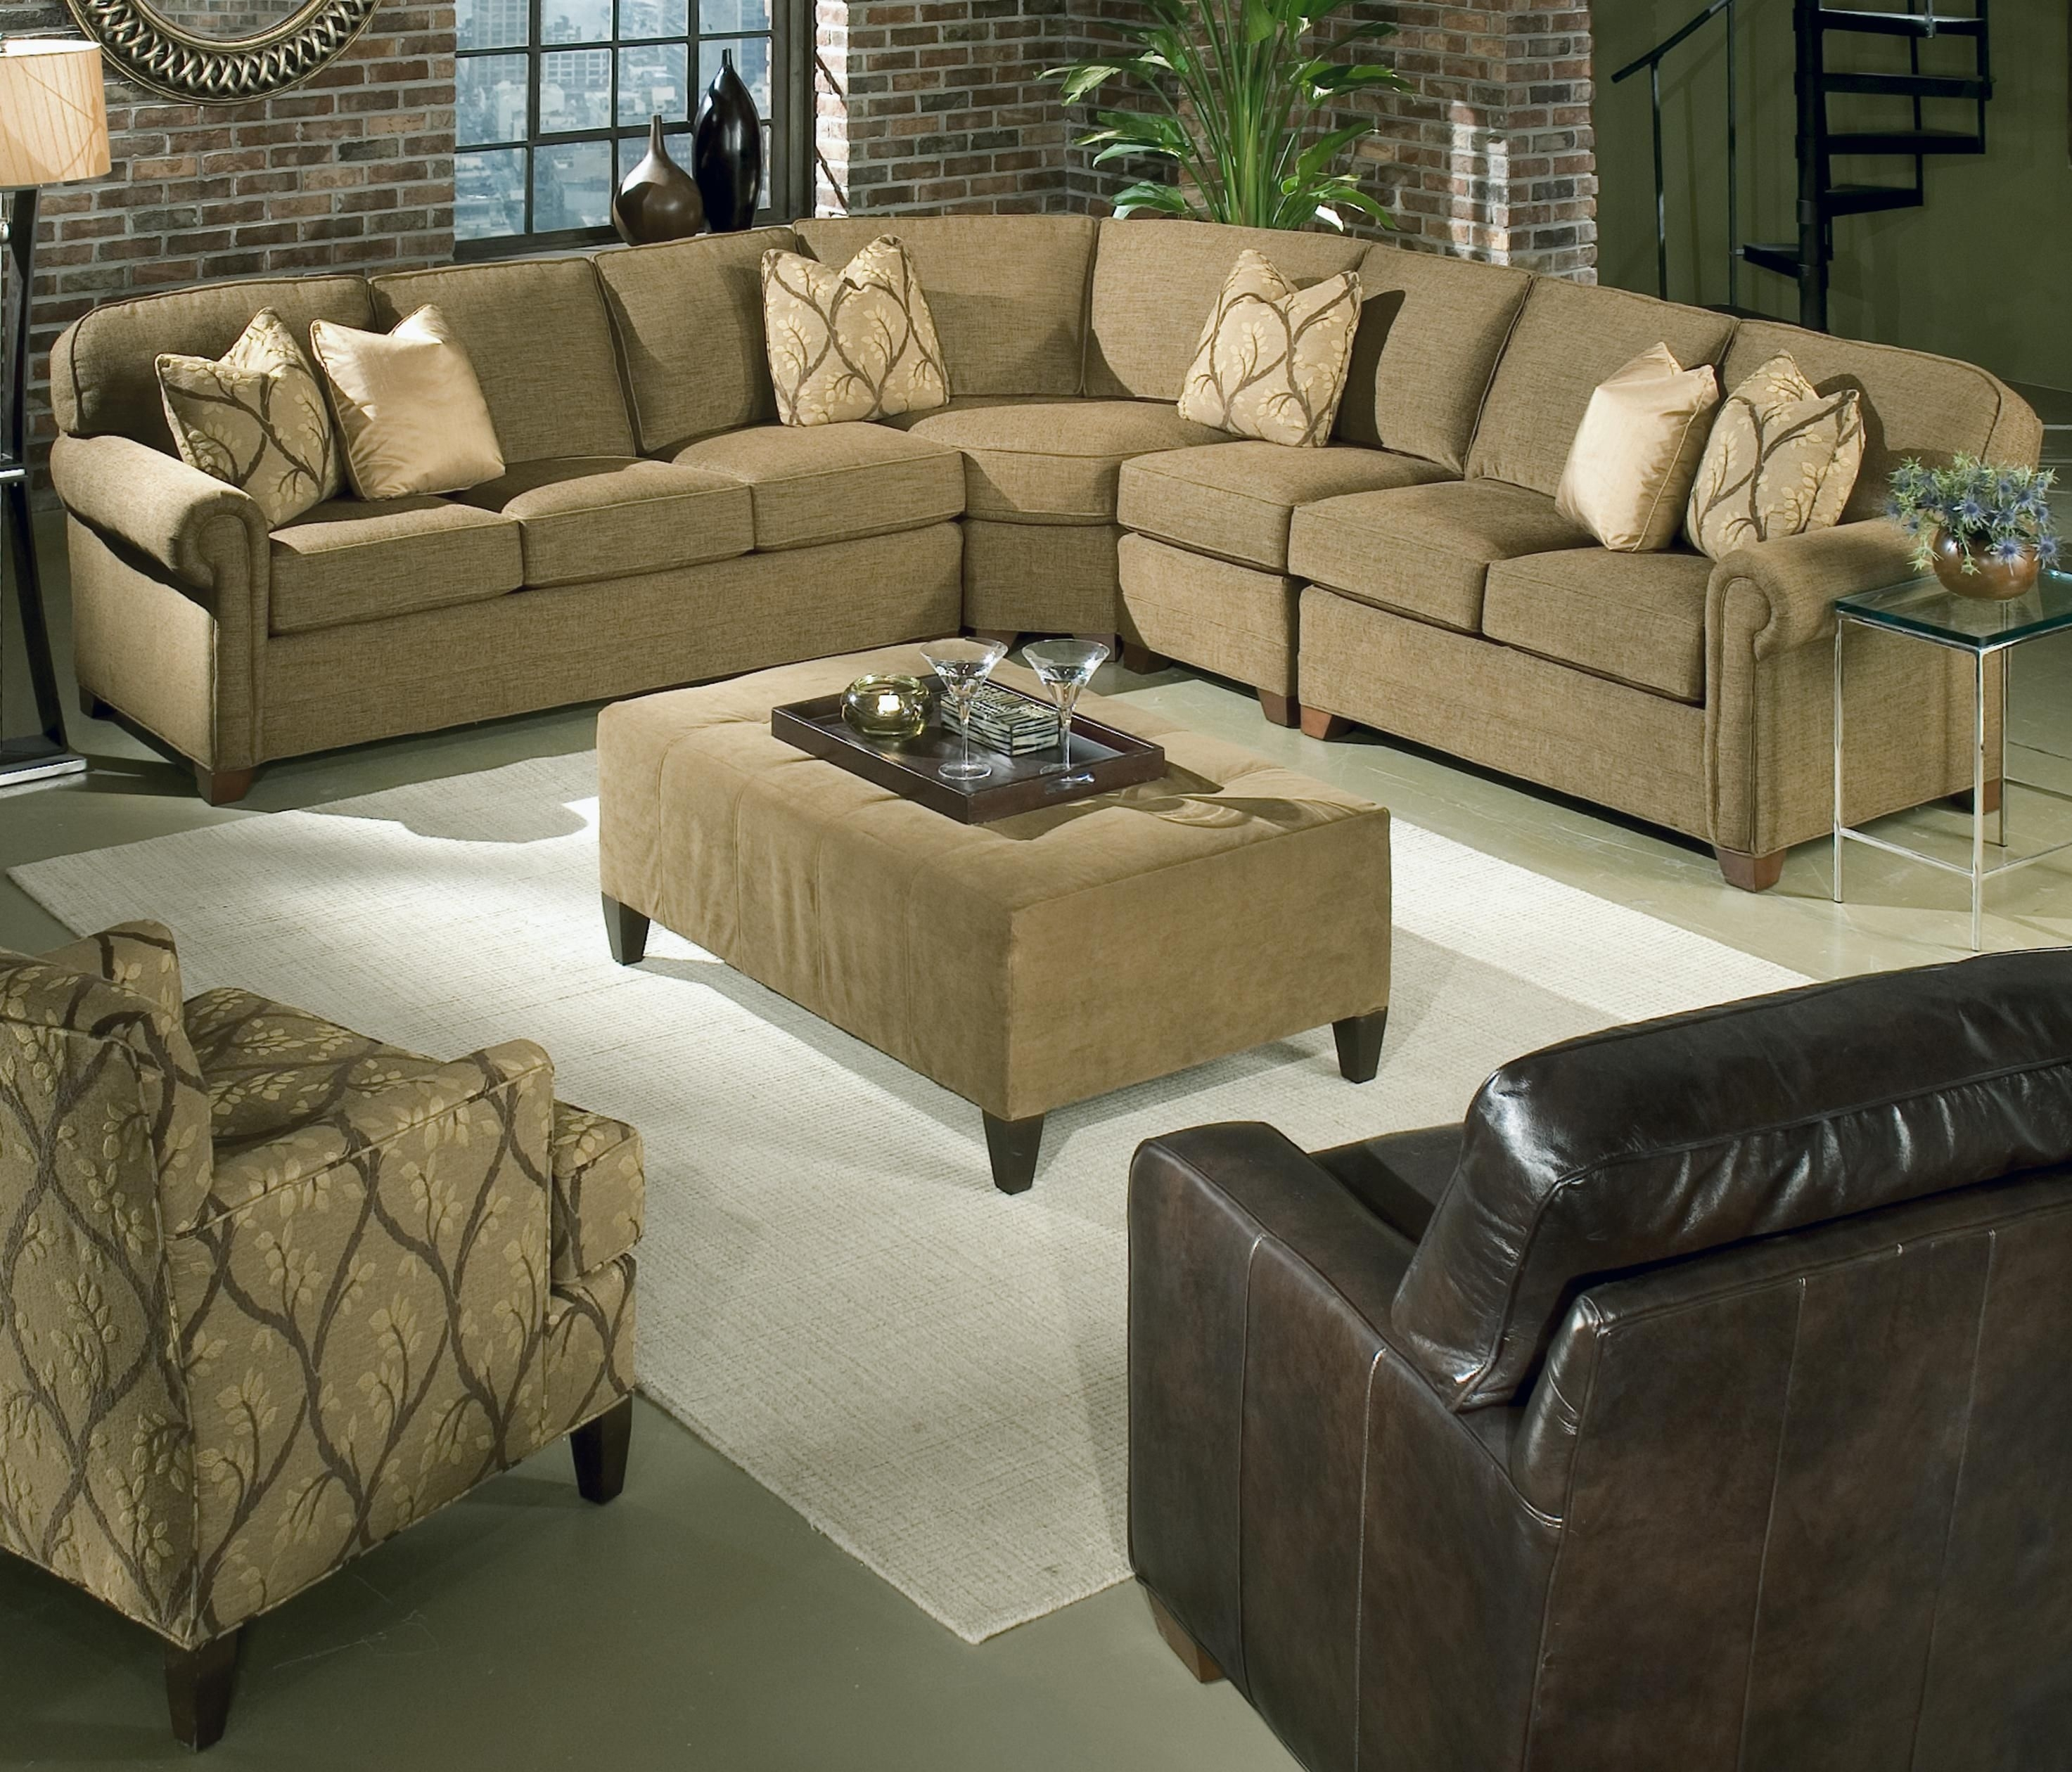 Brighton 4 Piece Sectionalking Hickory | All Things Softball Throughout Hickory Nc Sectional Sofas (View 4 of 10)